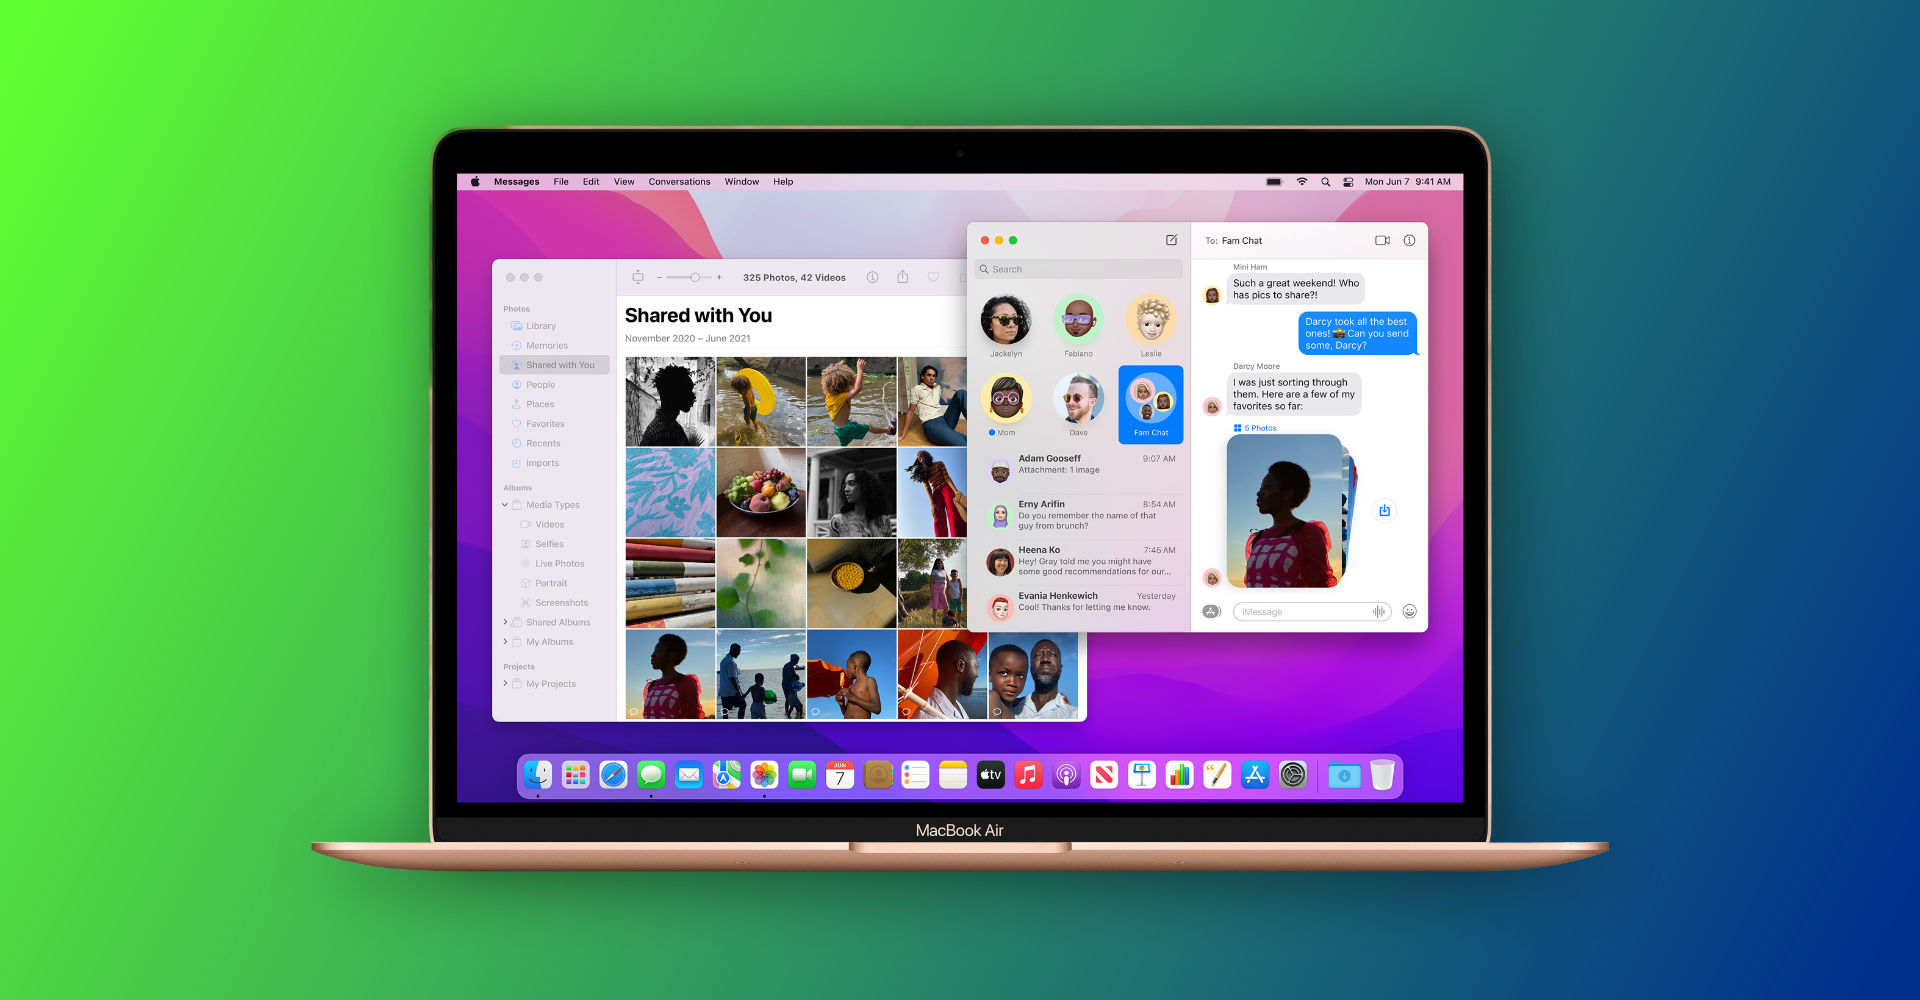 How to turn off 'Shared With You' in macOS Monterey and iOS 15